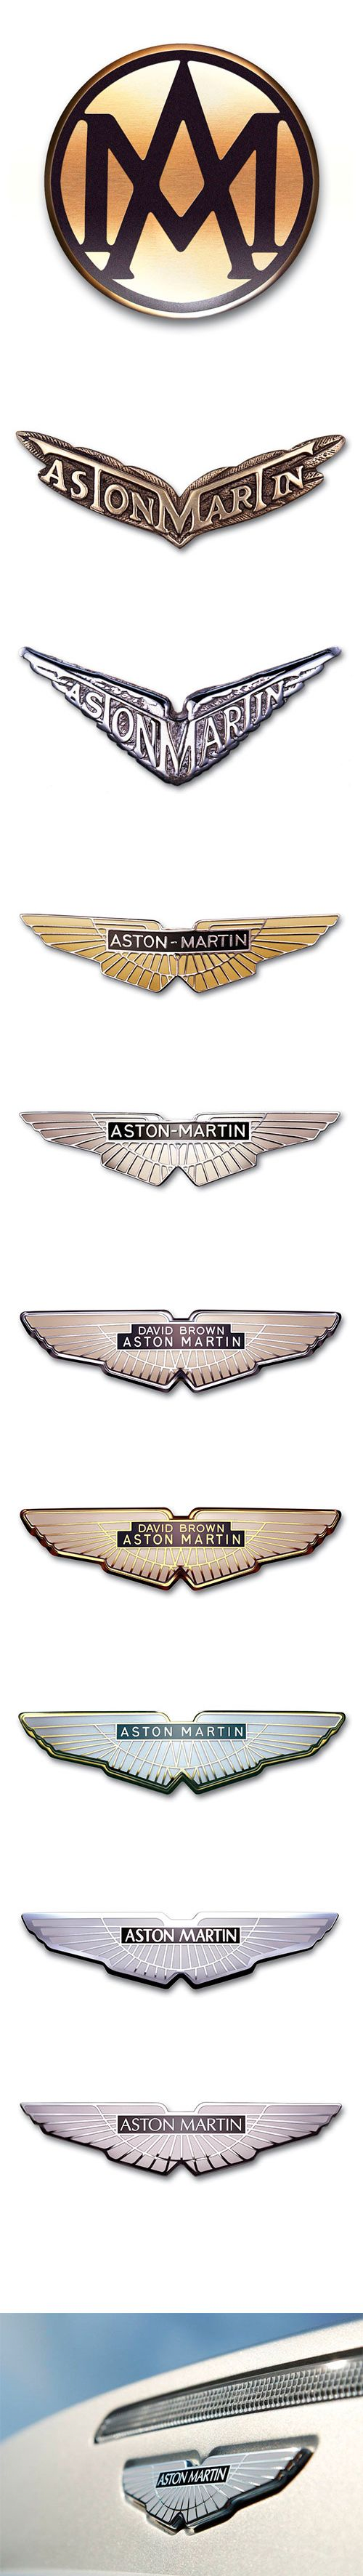 Aston Martin logo evolution Founded in 1913 by Robert Bamford and Lionel Martin as 'Bamford & Martin Ltd.' #AstonMartin #Logo #Heritage